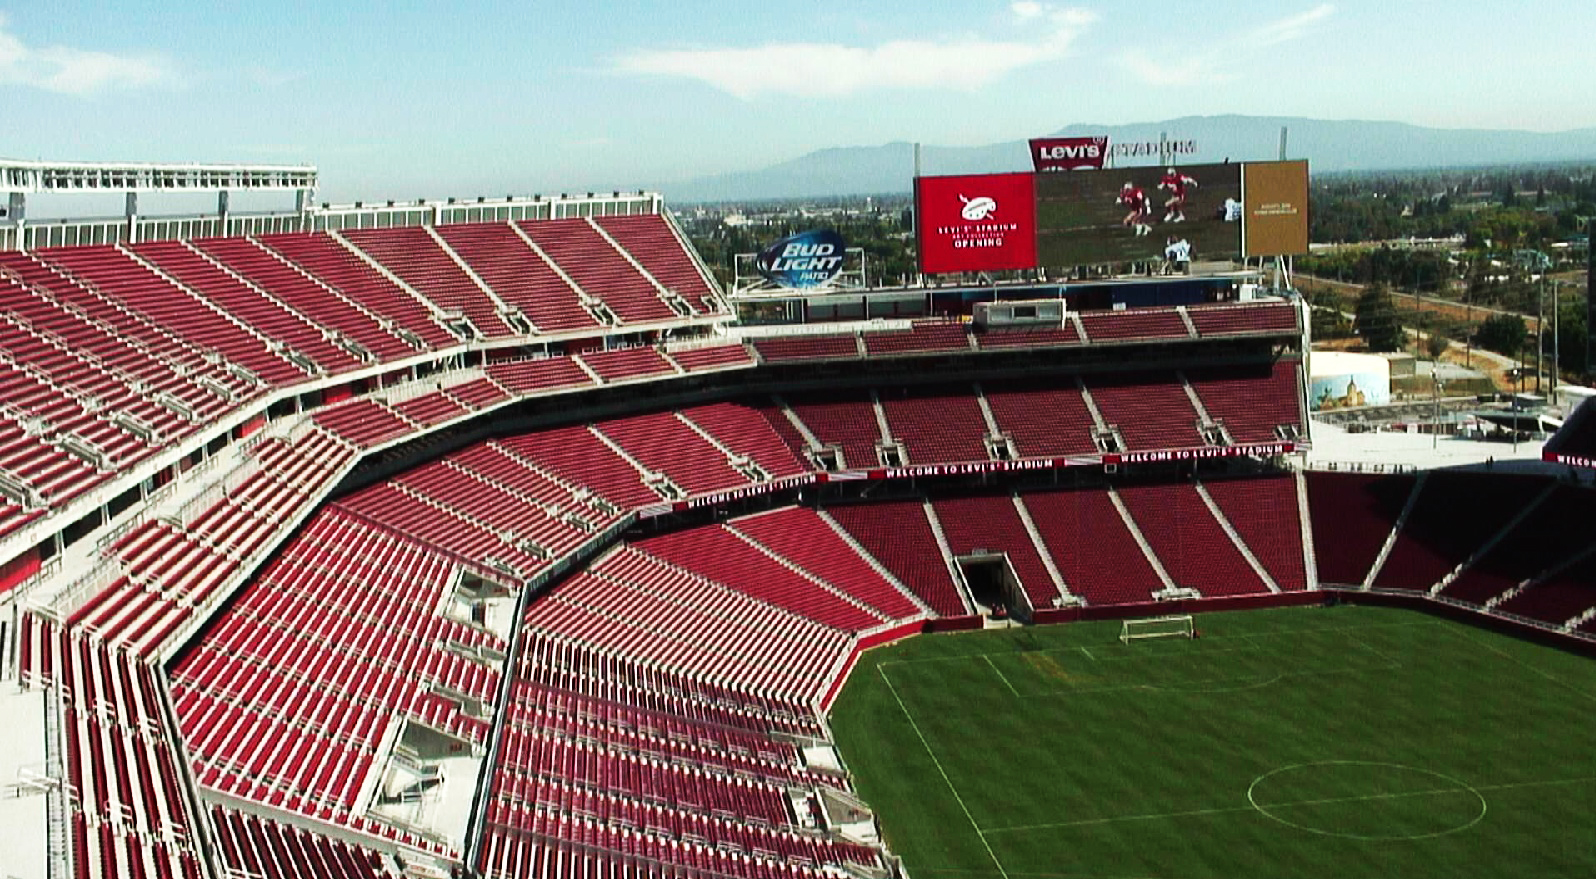 Nfl 49ers New Levi S Stadium Opens August 2 2014 With